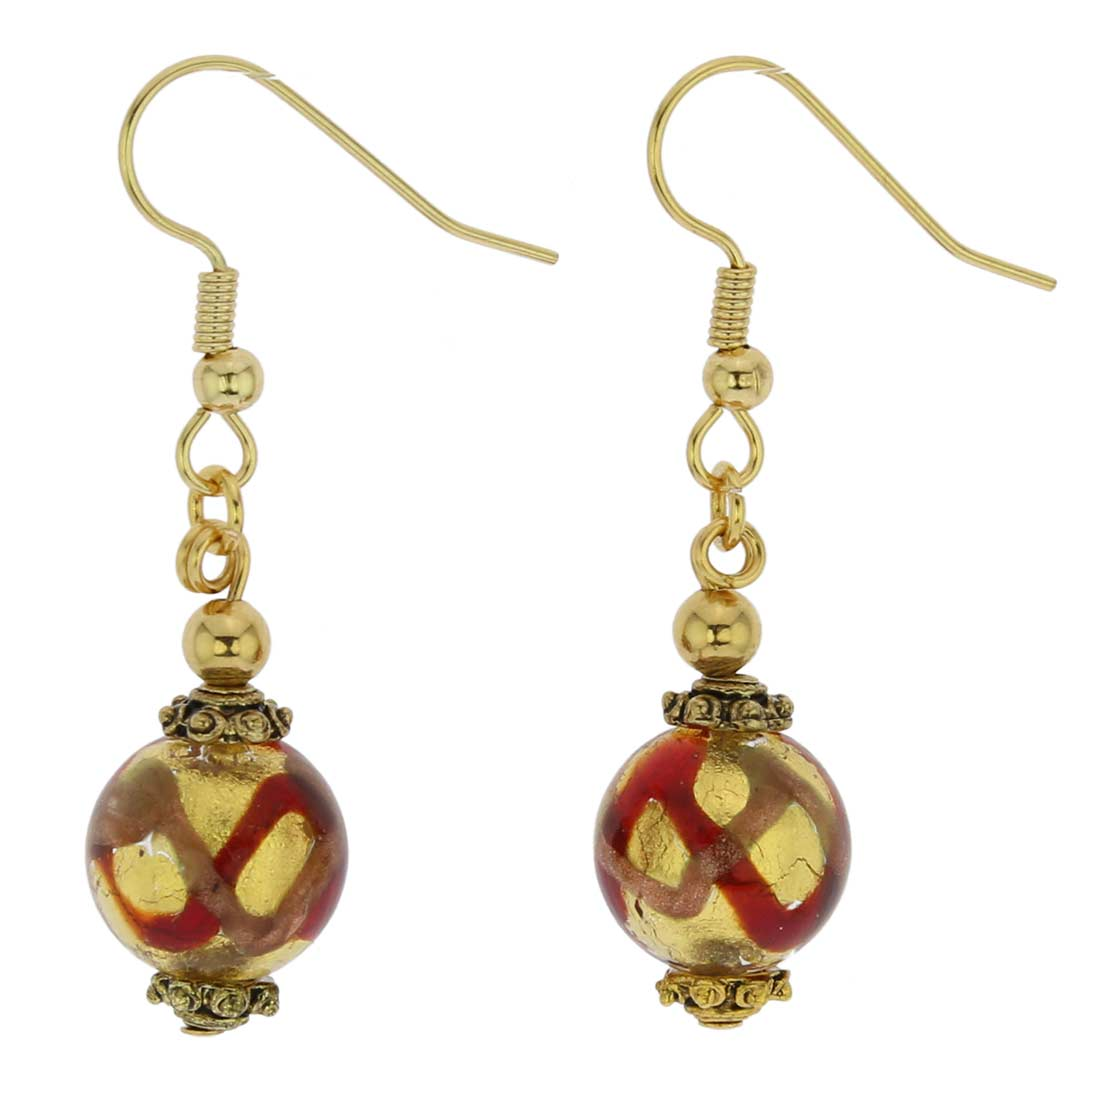 Antico Tesoro Balls Earrings - Red Waves Gold